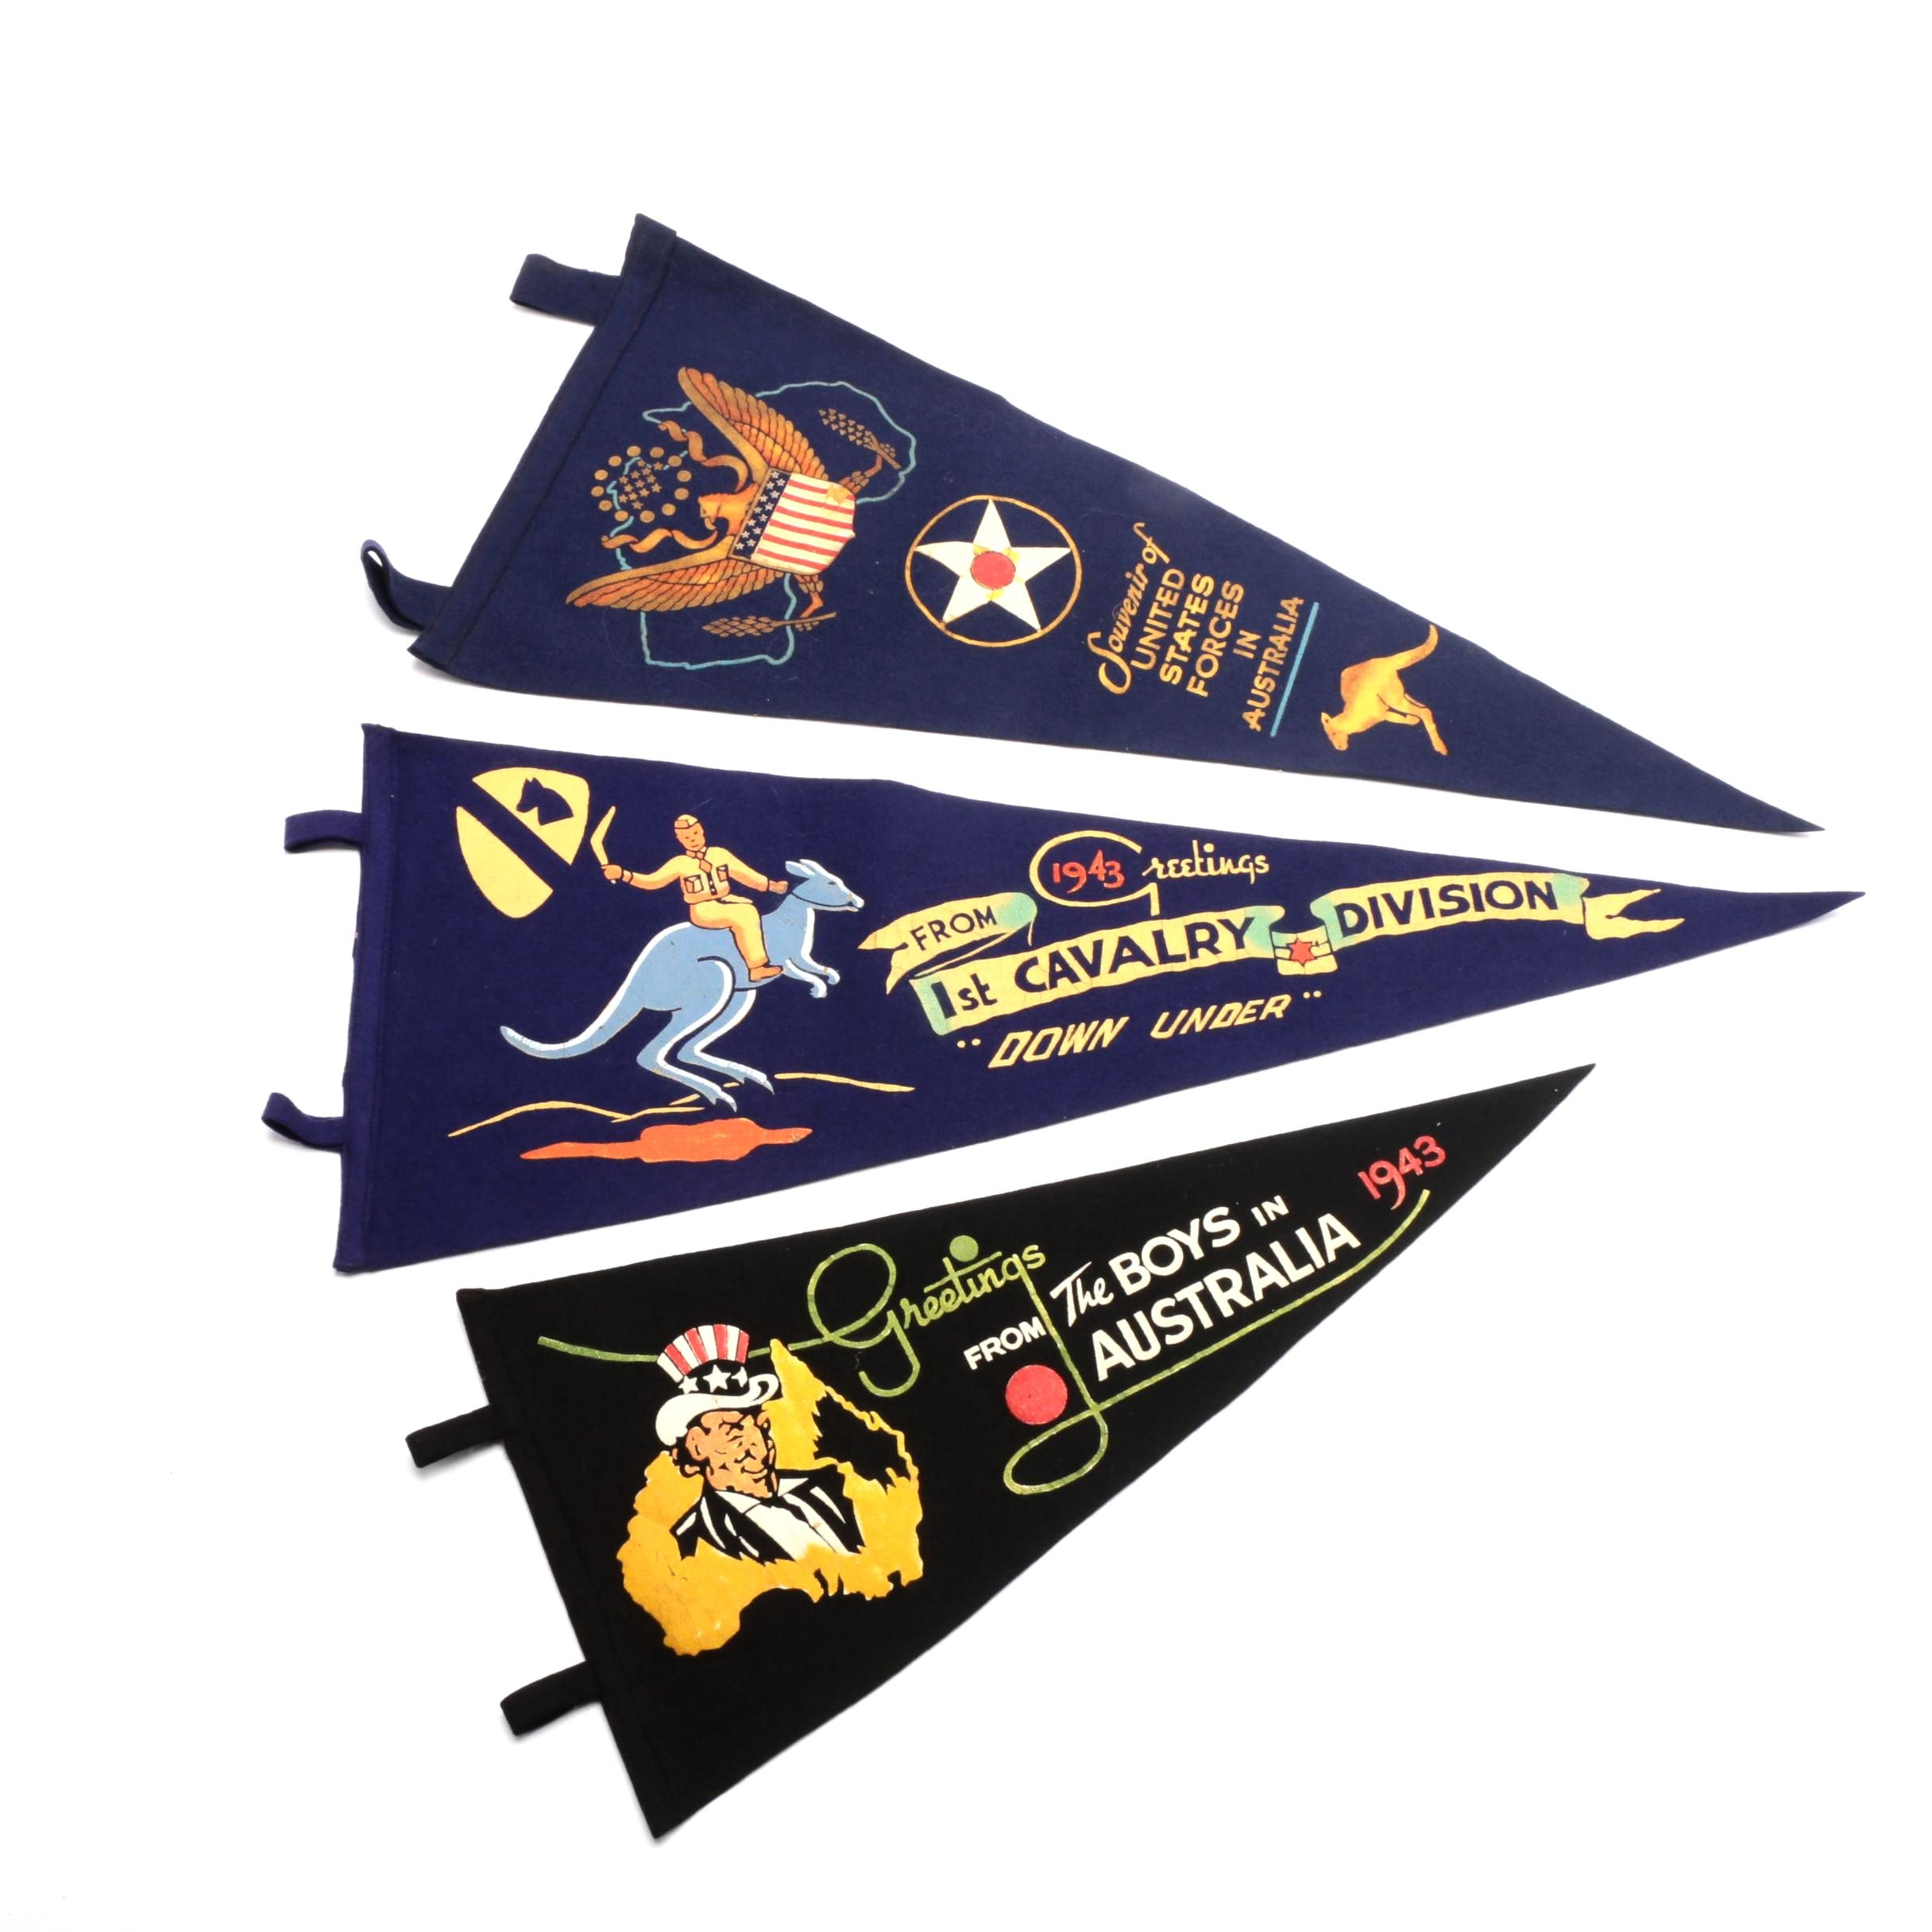 Three World War II Felt Pennants Dated 1943